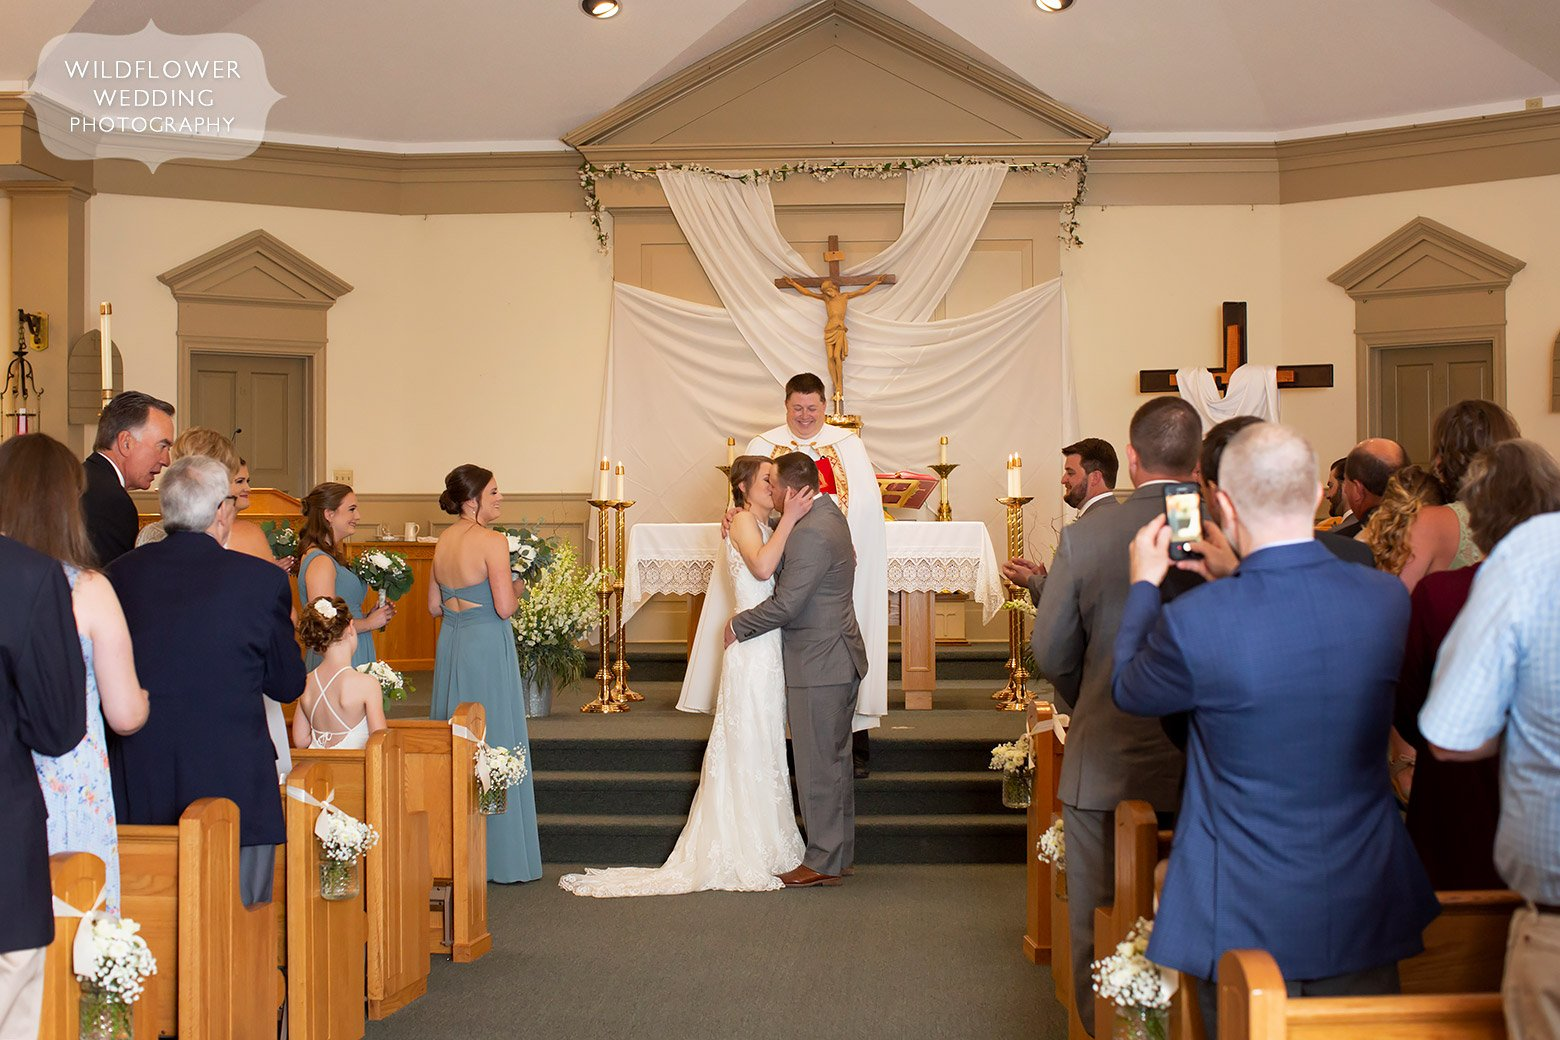 Bride and groom kiss at end of church ceremony in Boonville, MO.